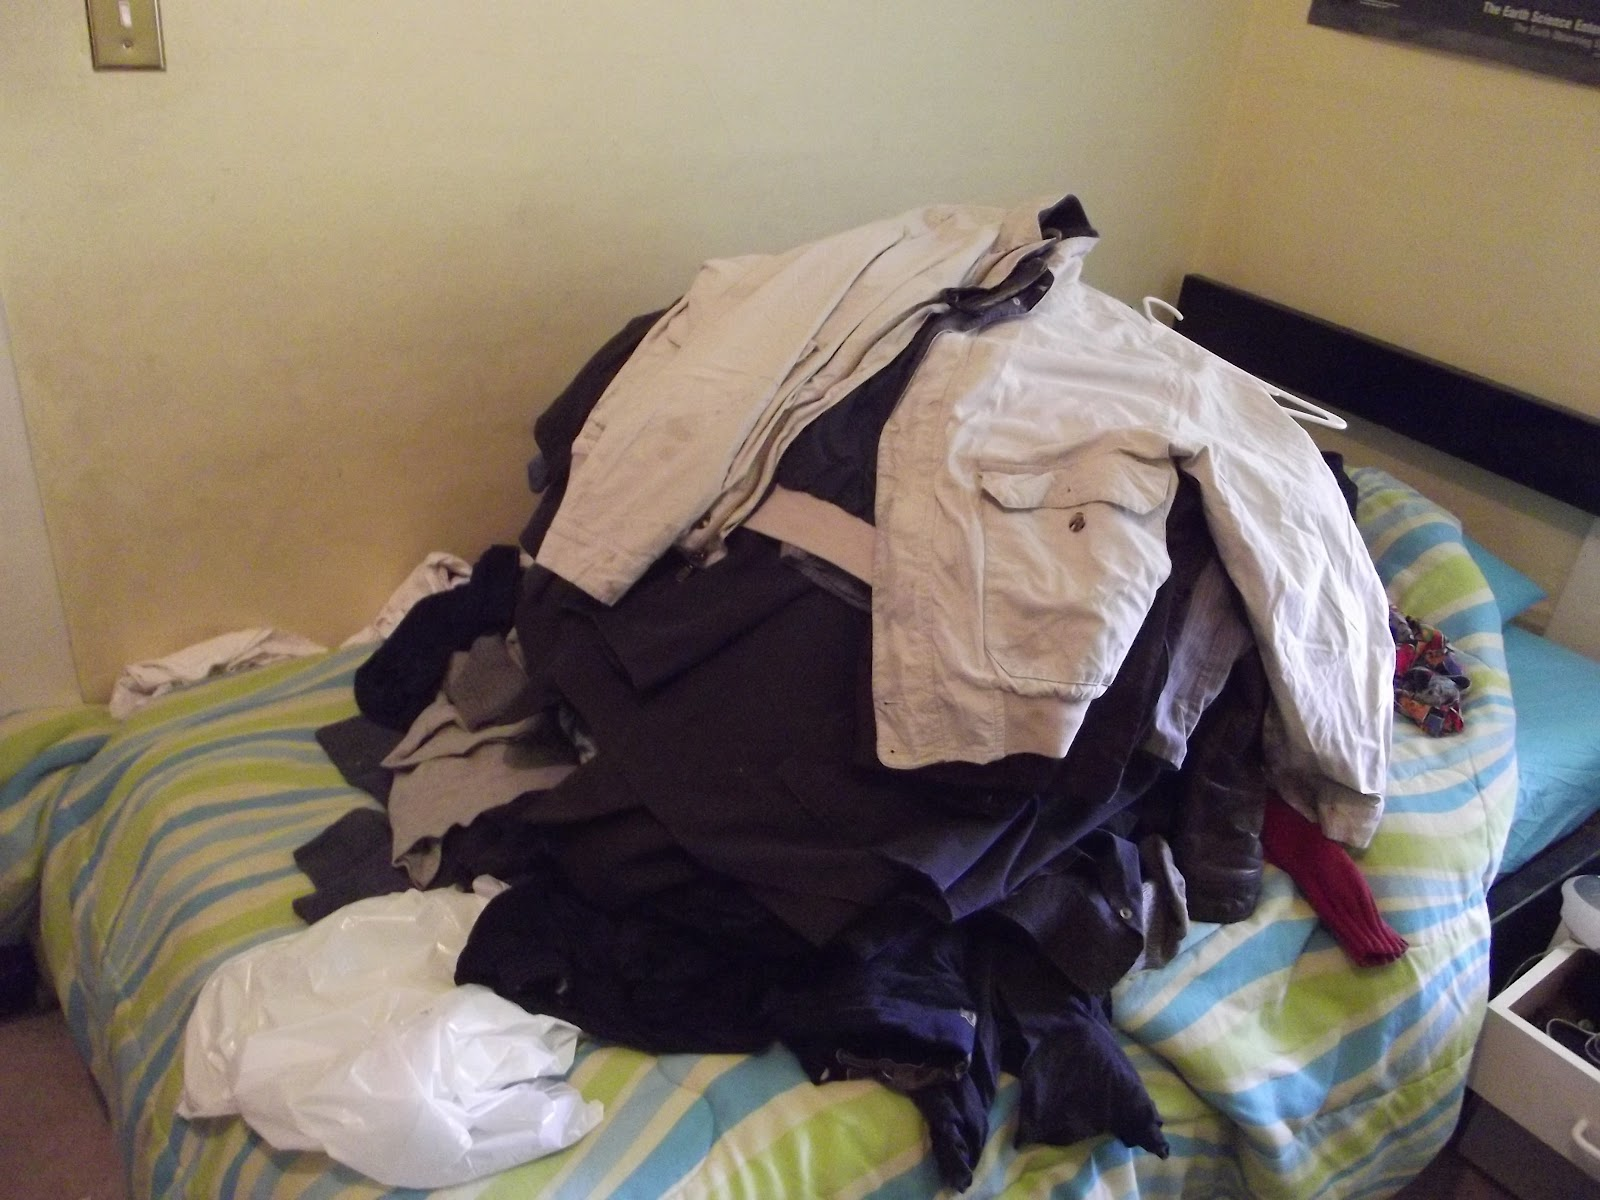 A pile of clothes to declutter